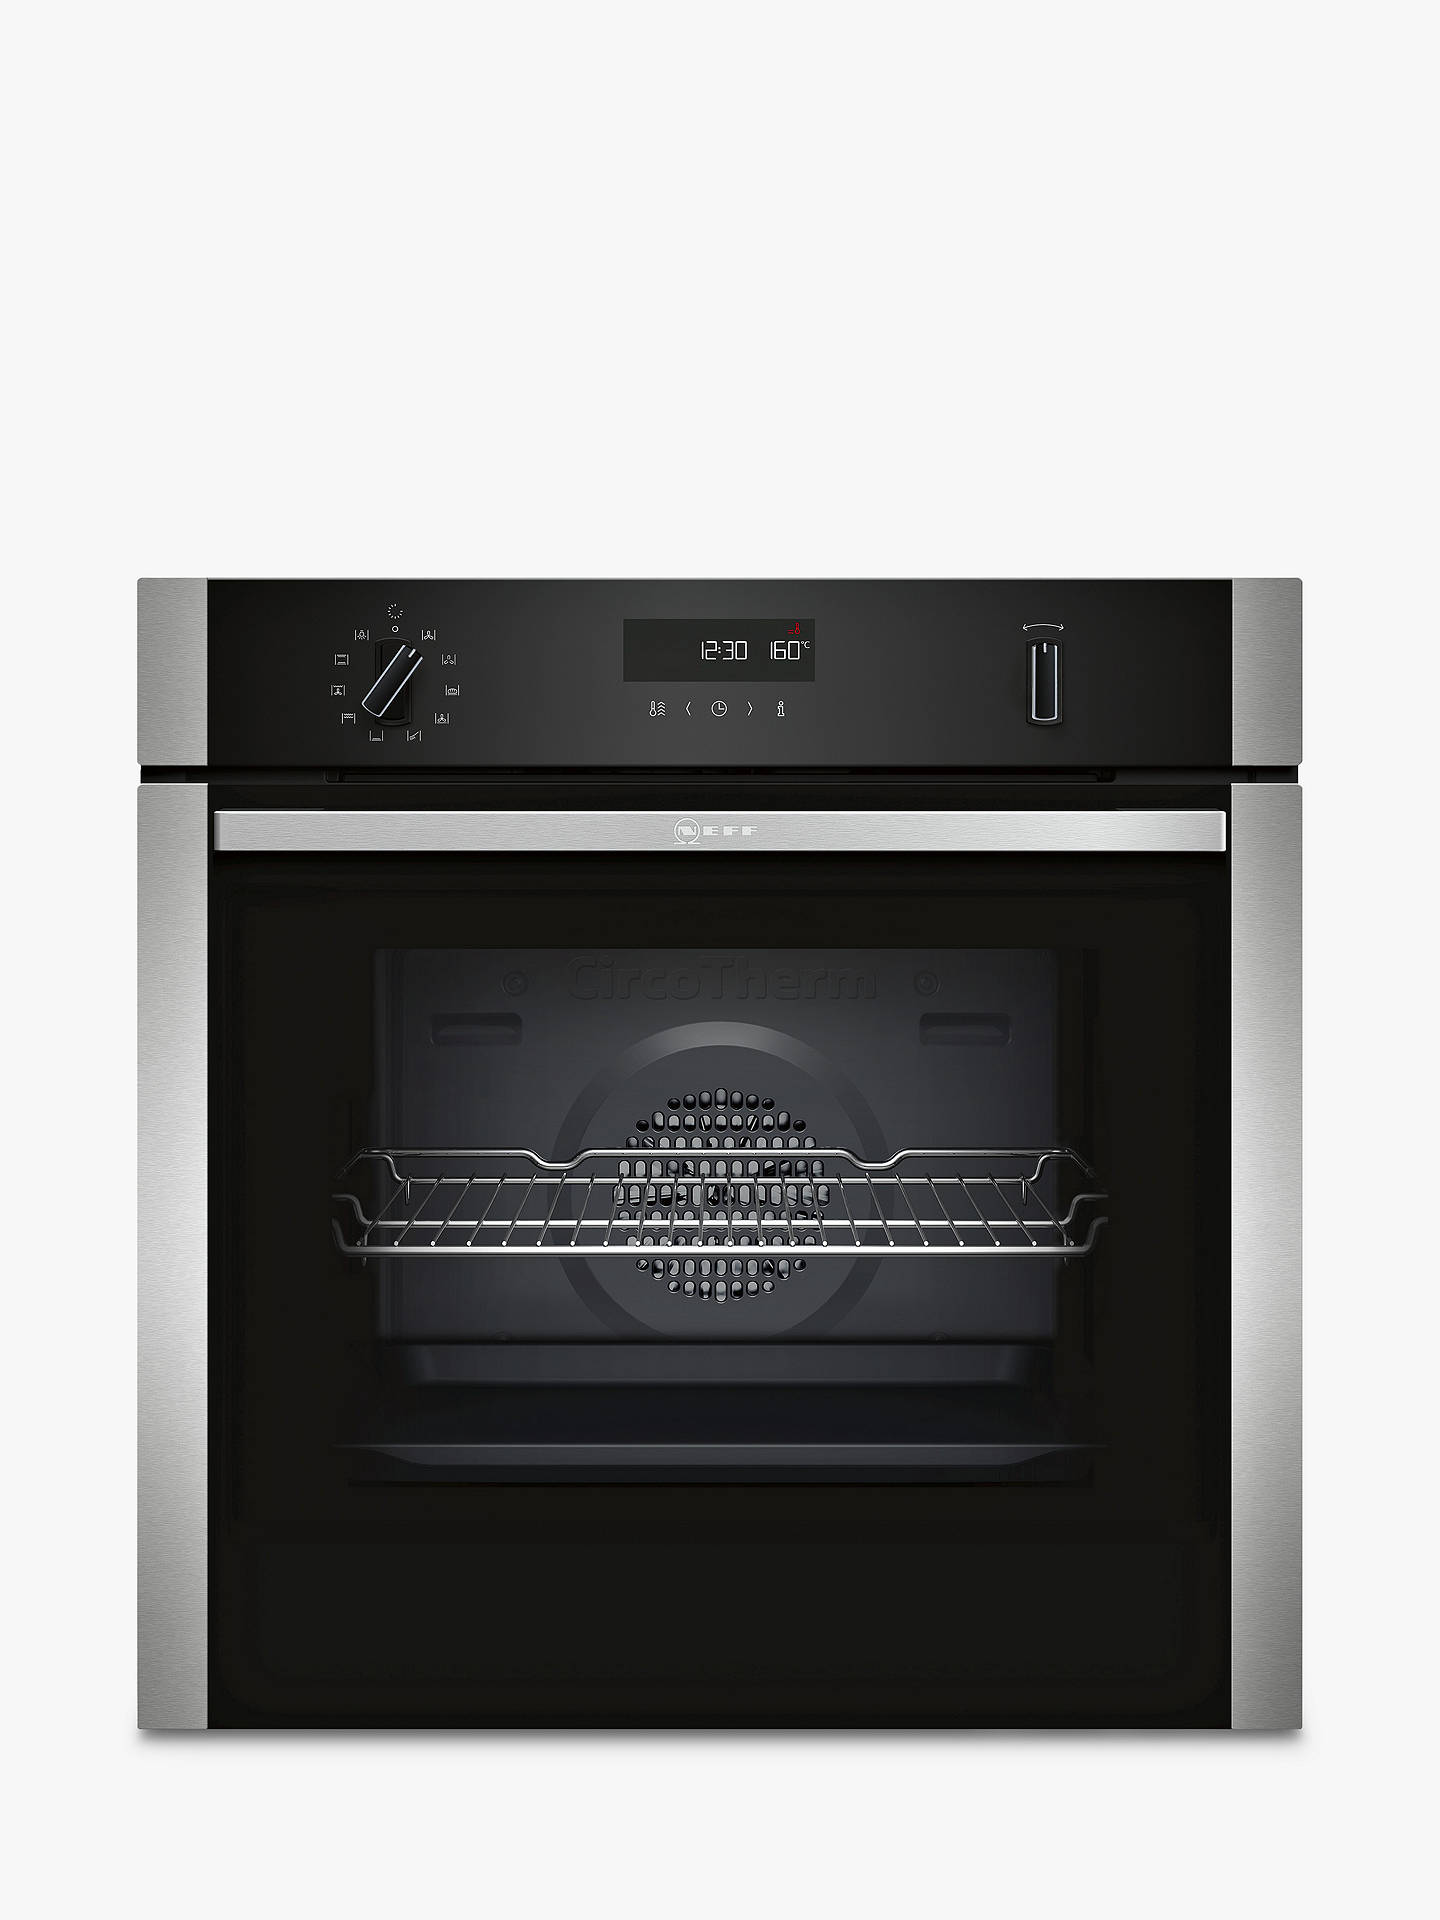 Neff B2 Ach7 Hn0 B Built In Pyrolytic Single Oven, Stainless Steel by Neff